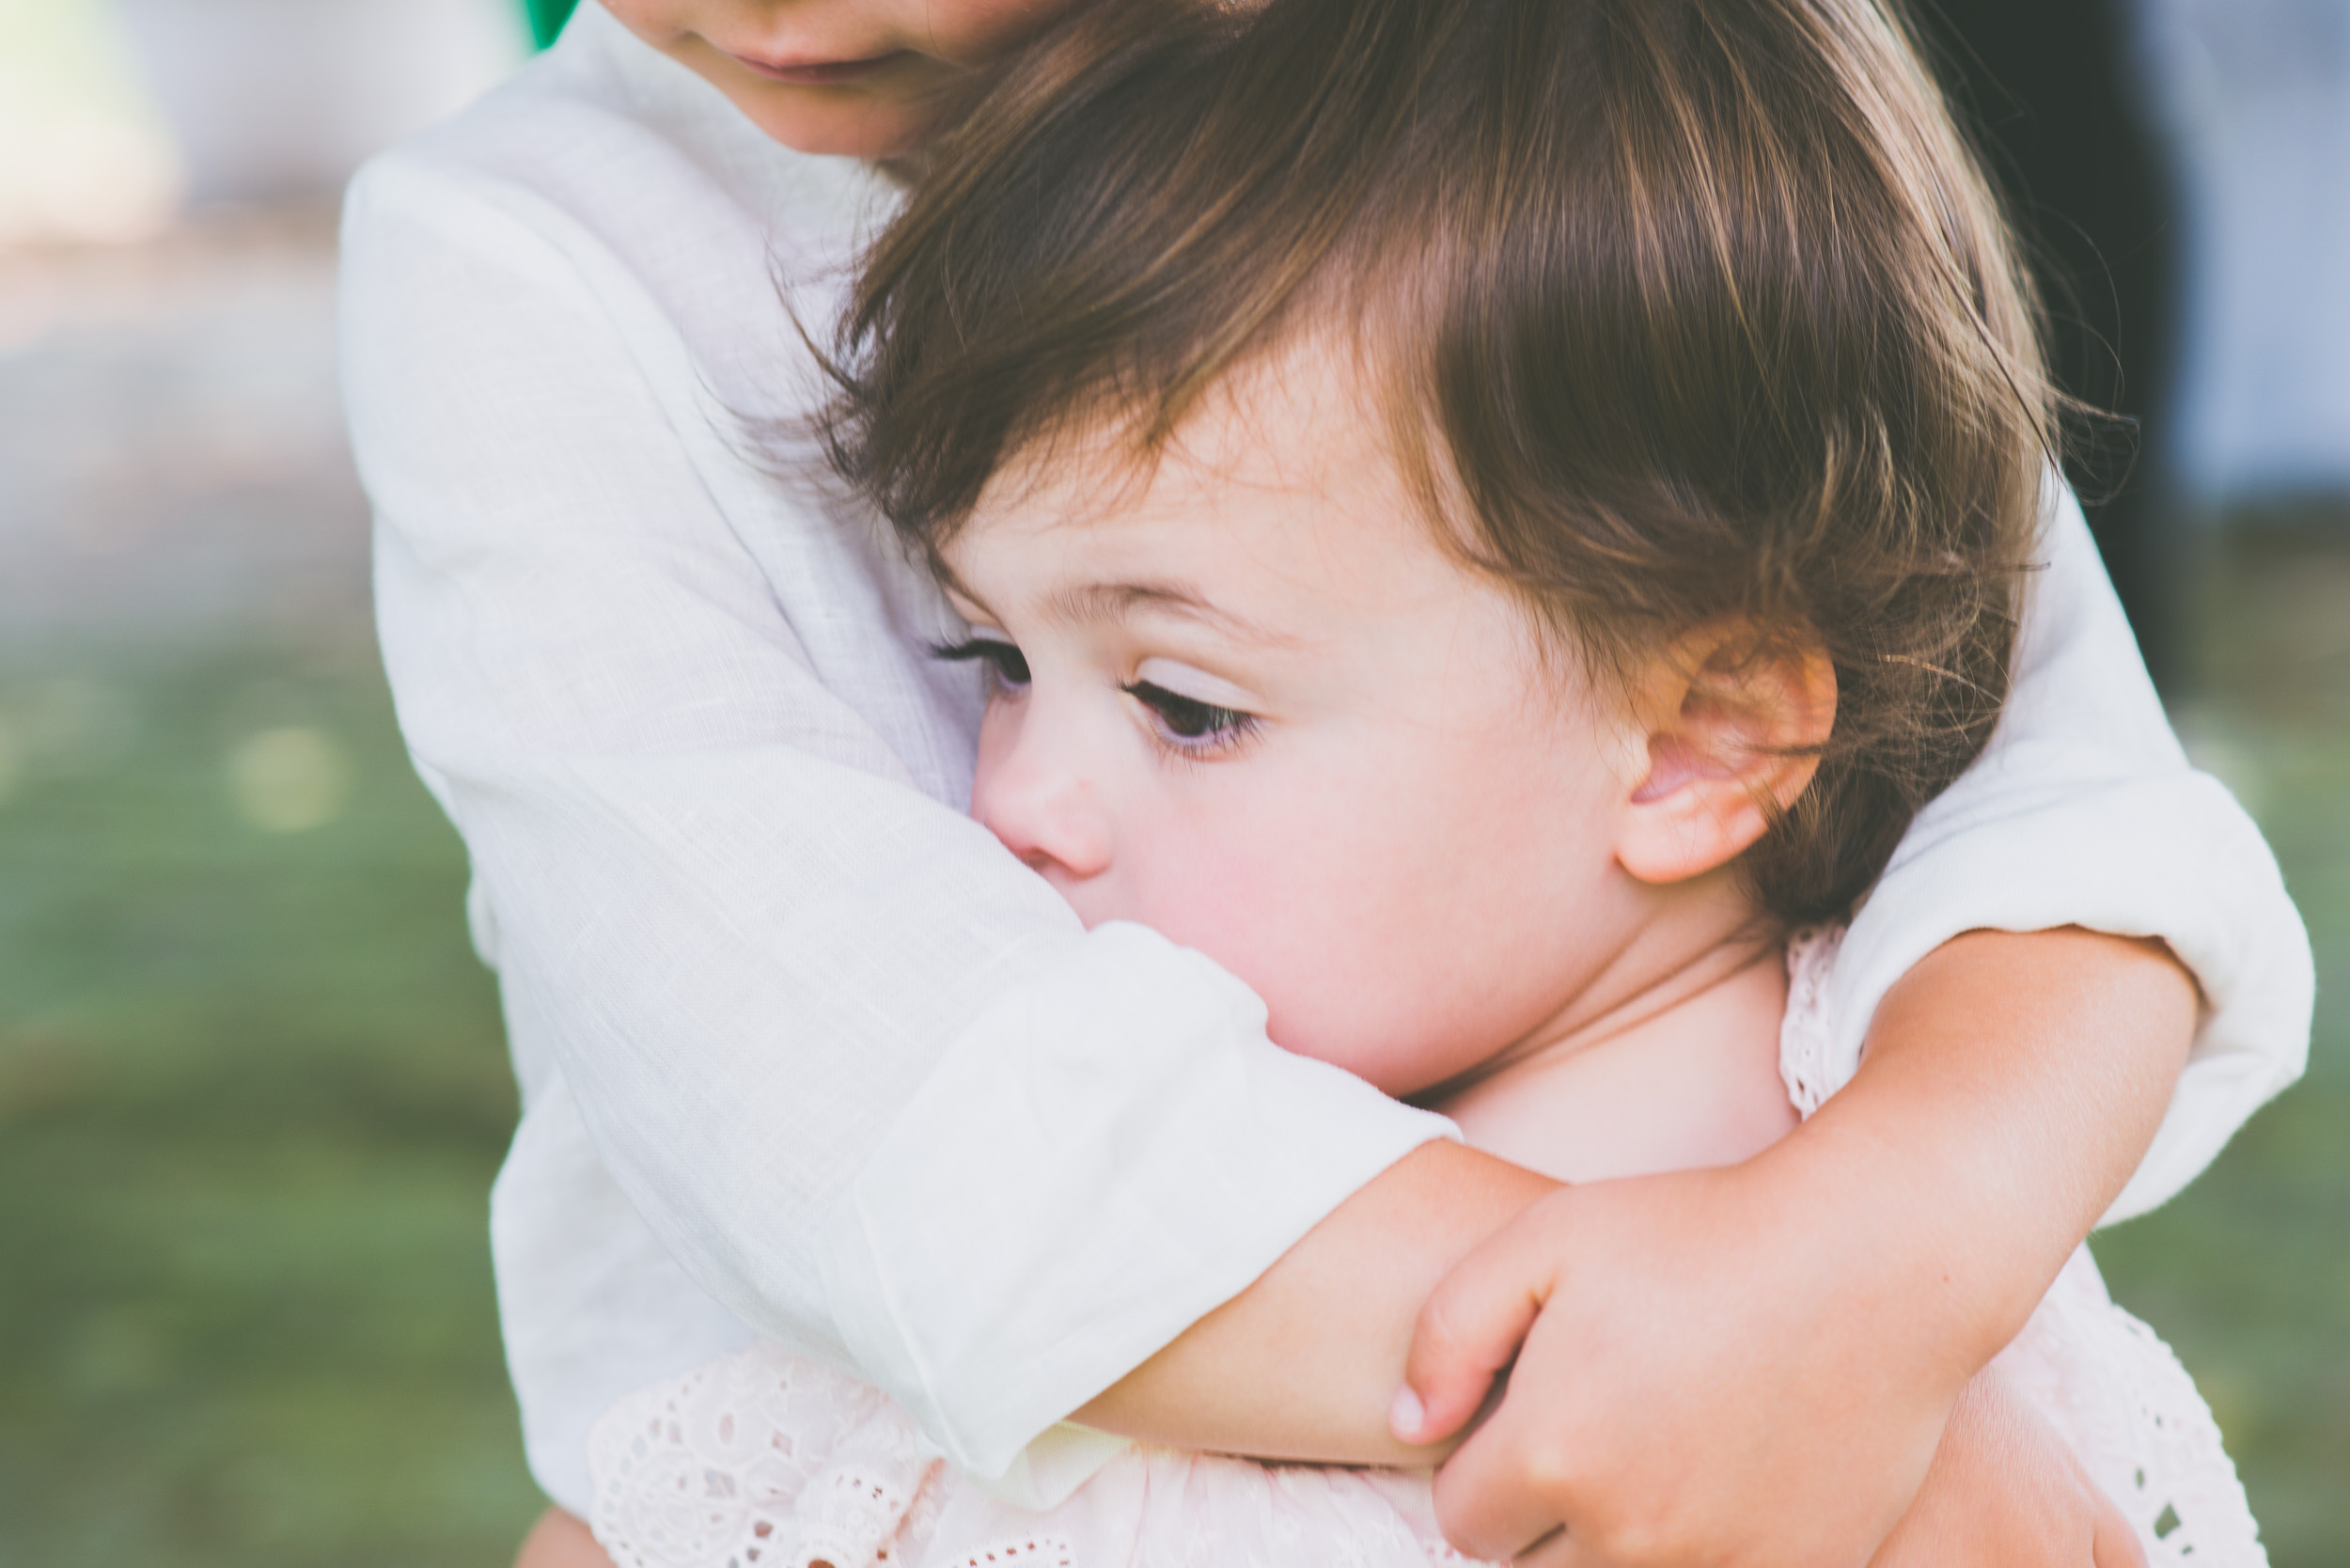 Boy hugging sister - Family - Photo credit Nicola Bailey.jpg